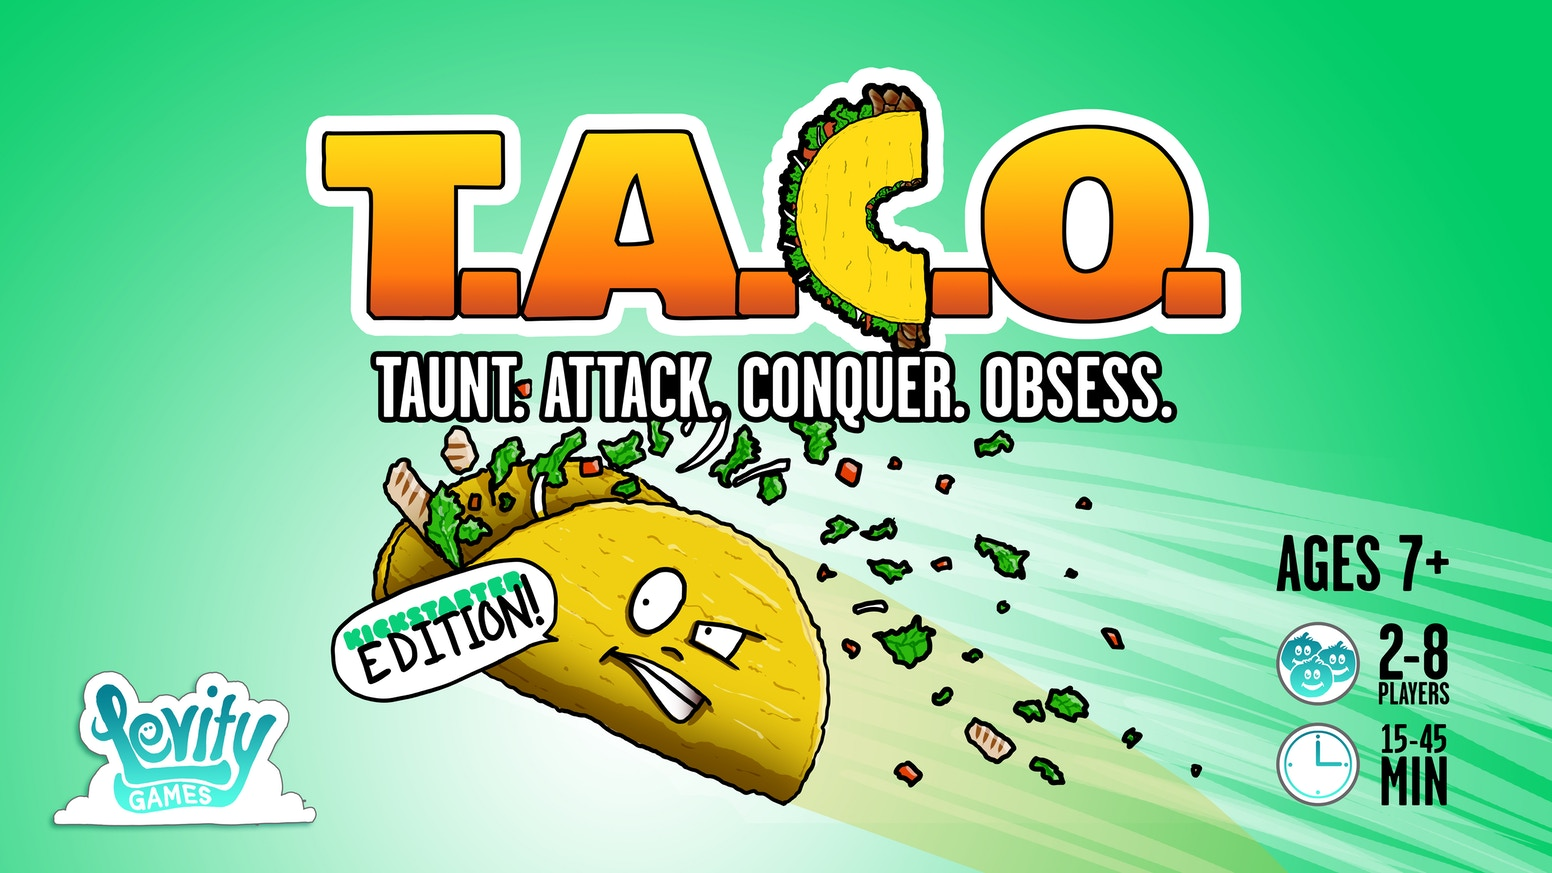 It's a race to build epic tacos. Strategically steal and destroy the most coveted ingredients to win. 10-45 minutes for 2-8 players.